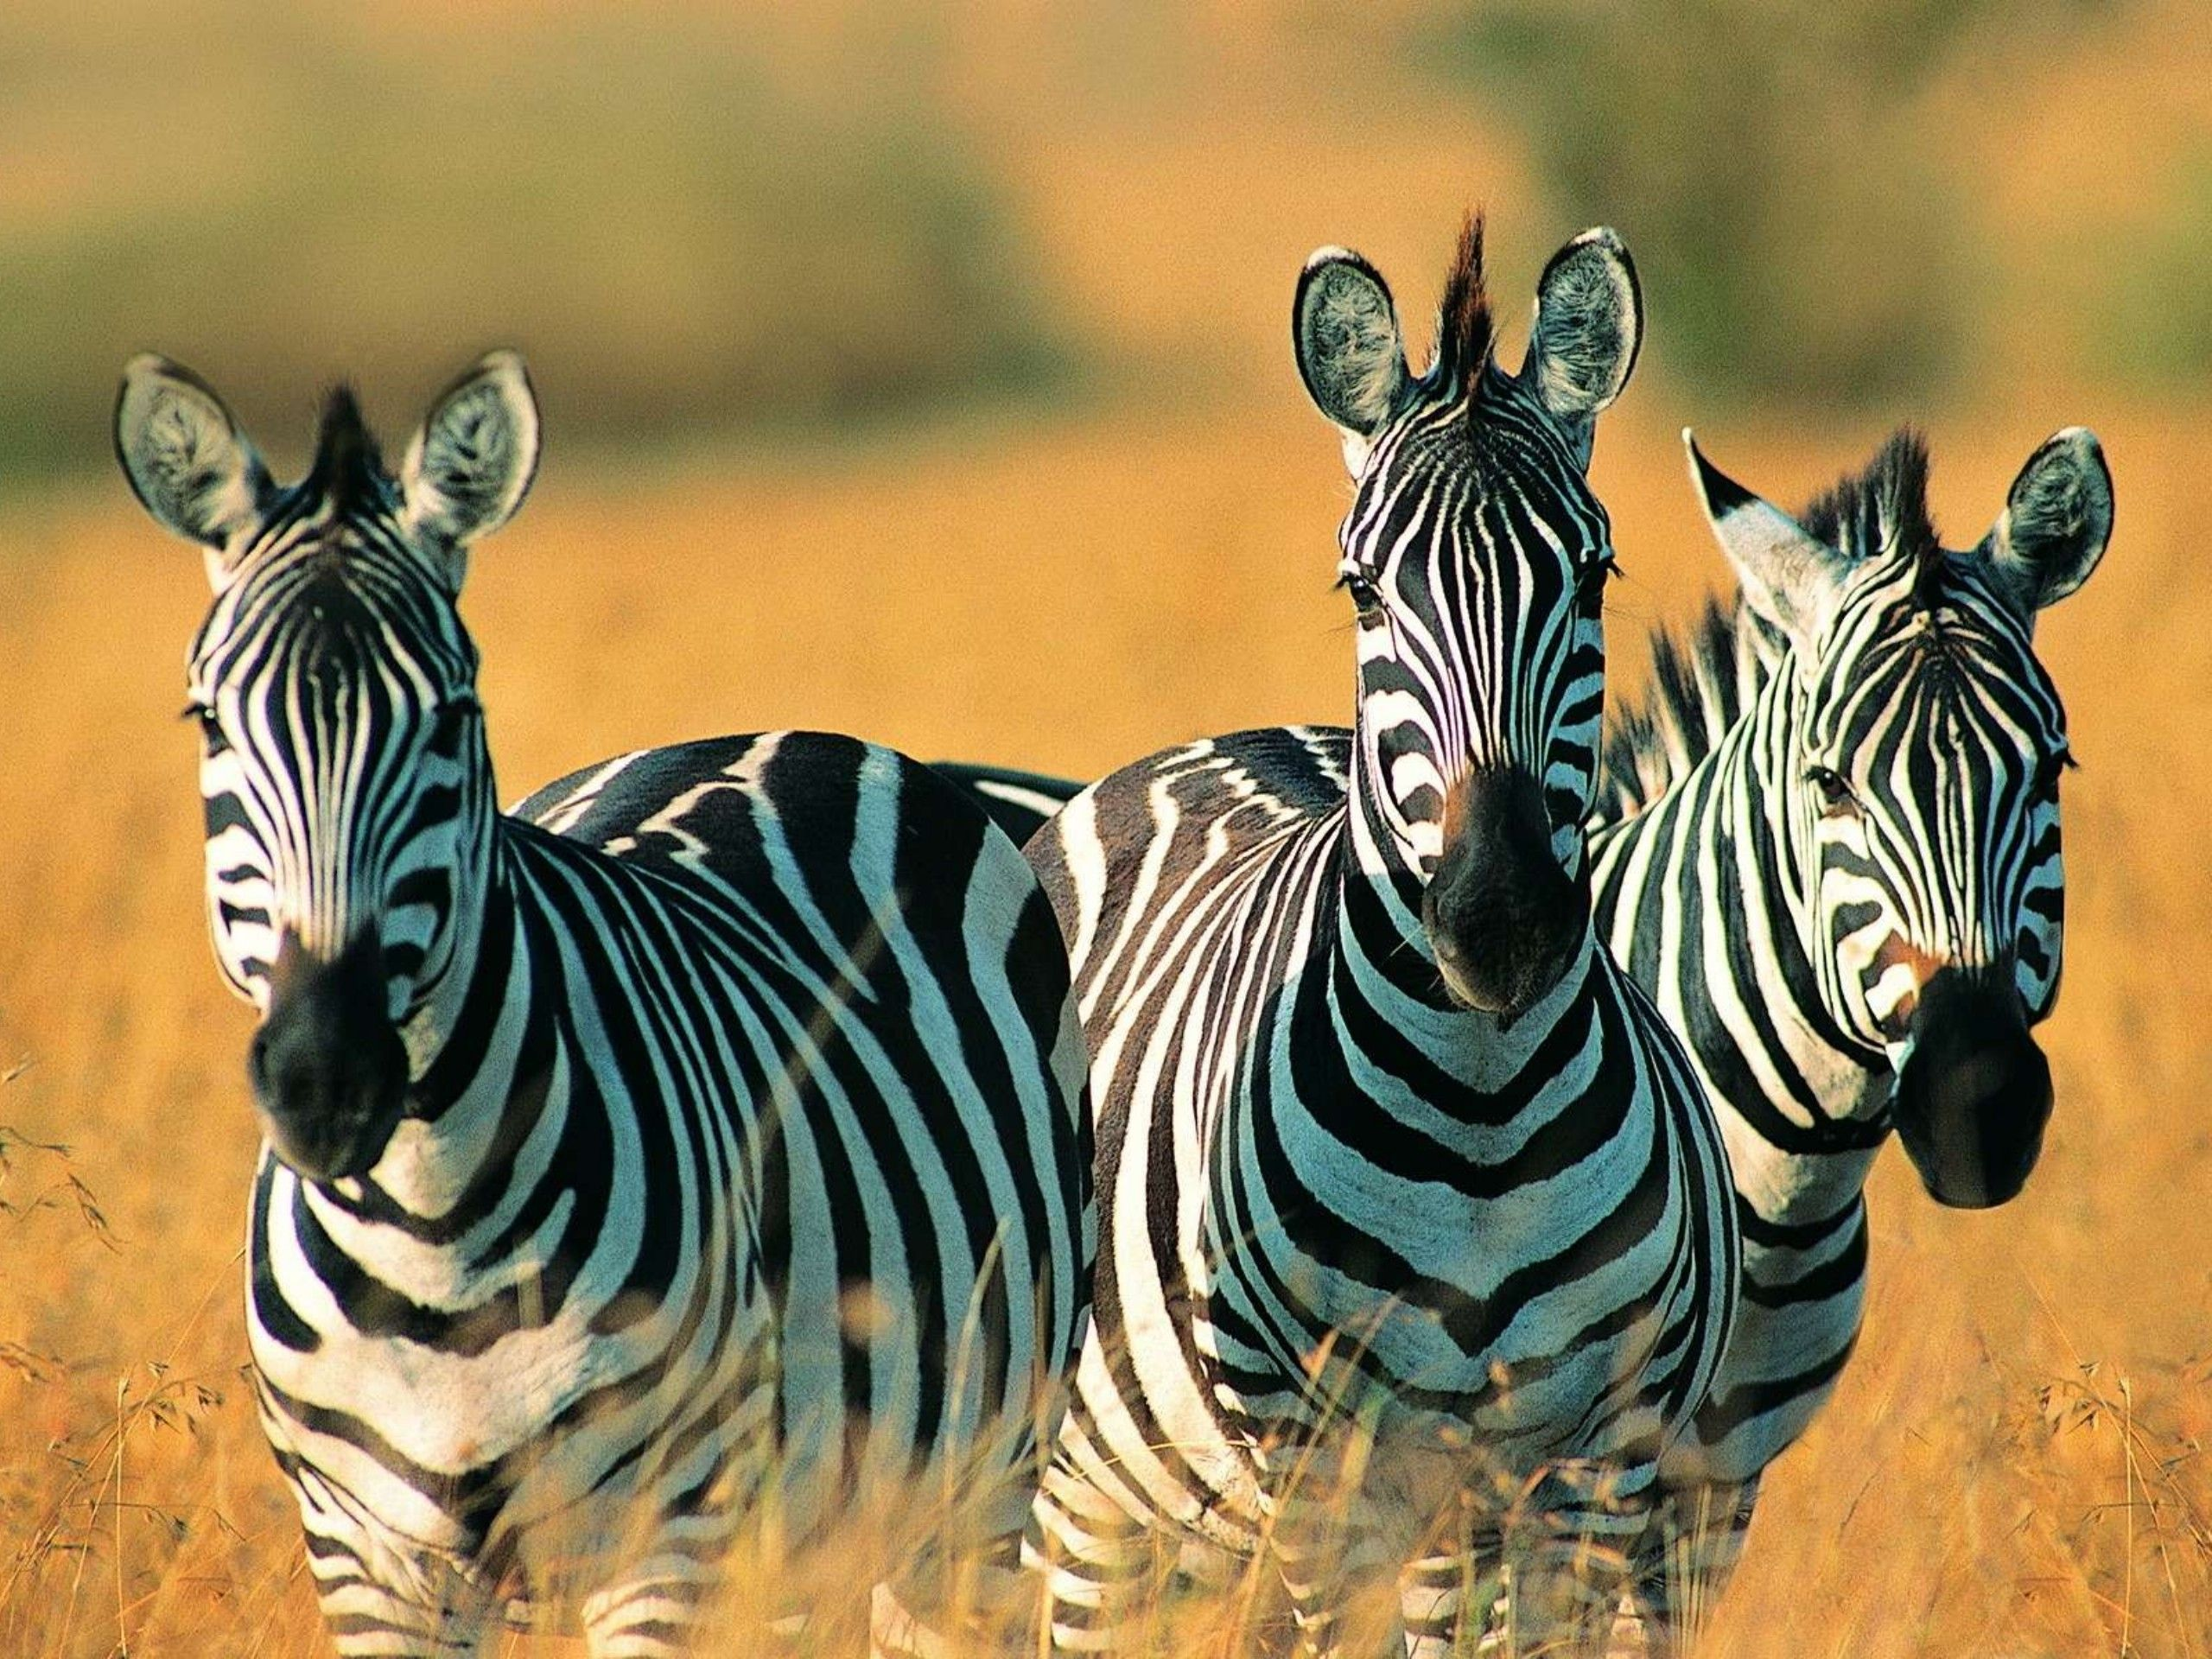 Cute Zebras Wallpapers Wide with Wallpaper High Resolution 2560x1920